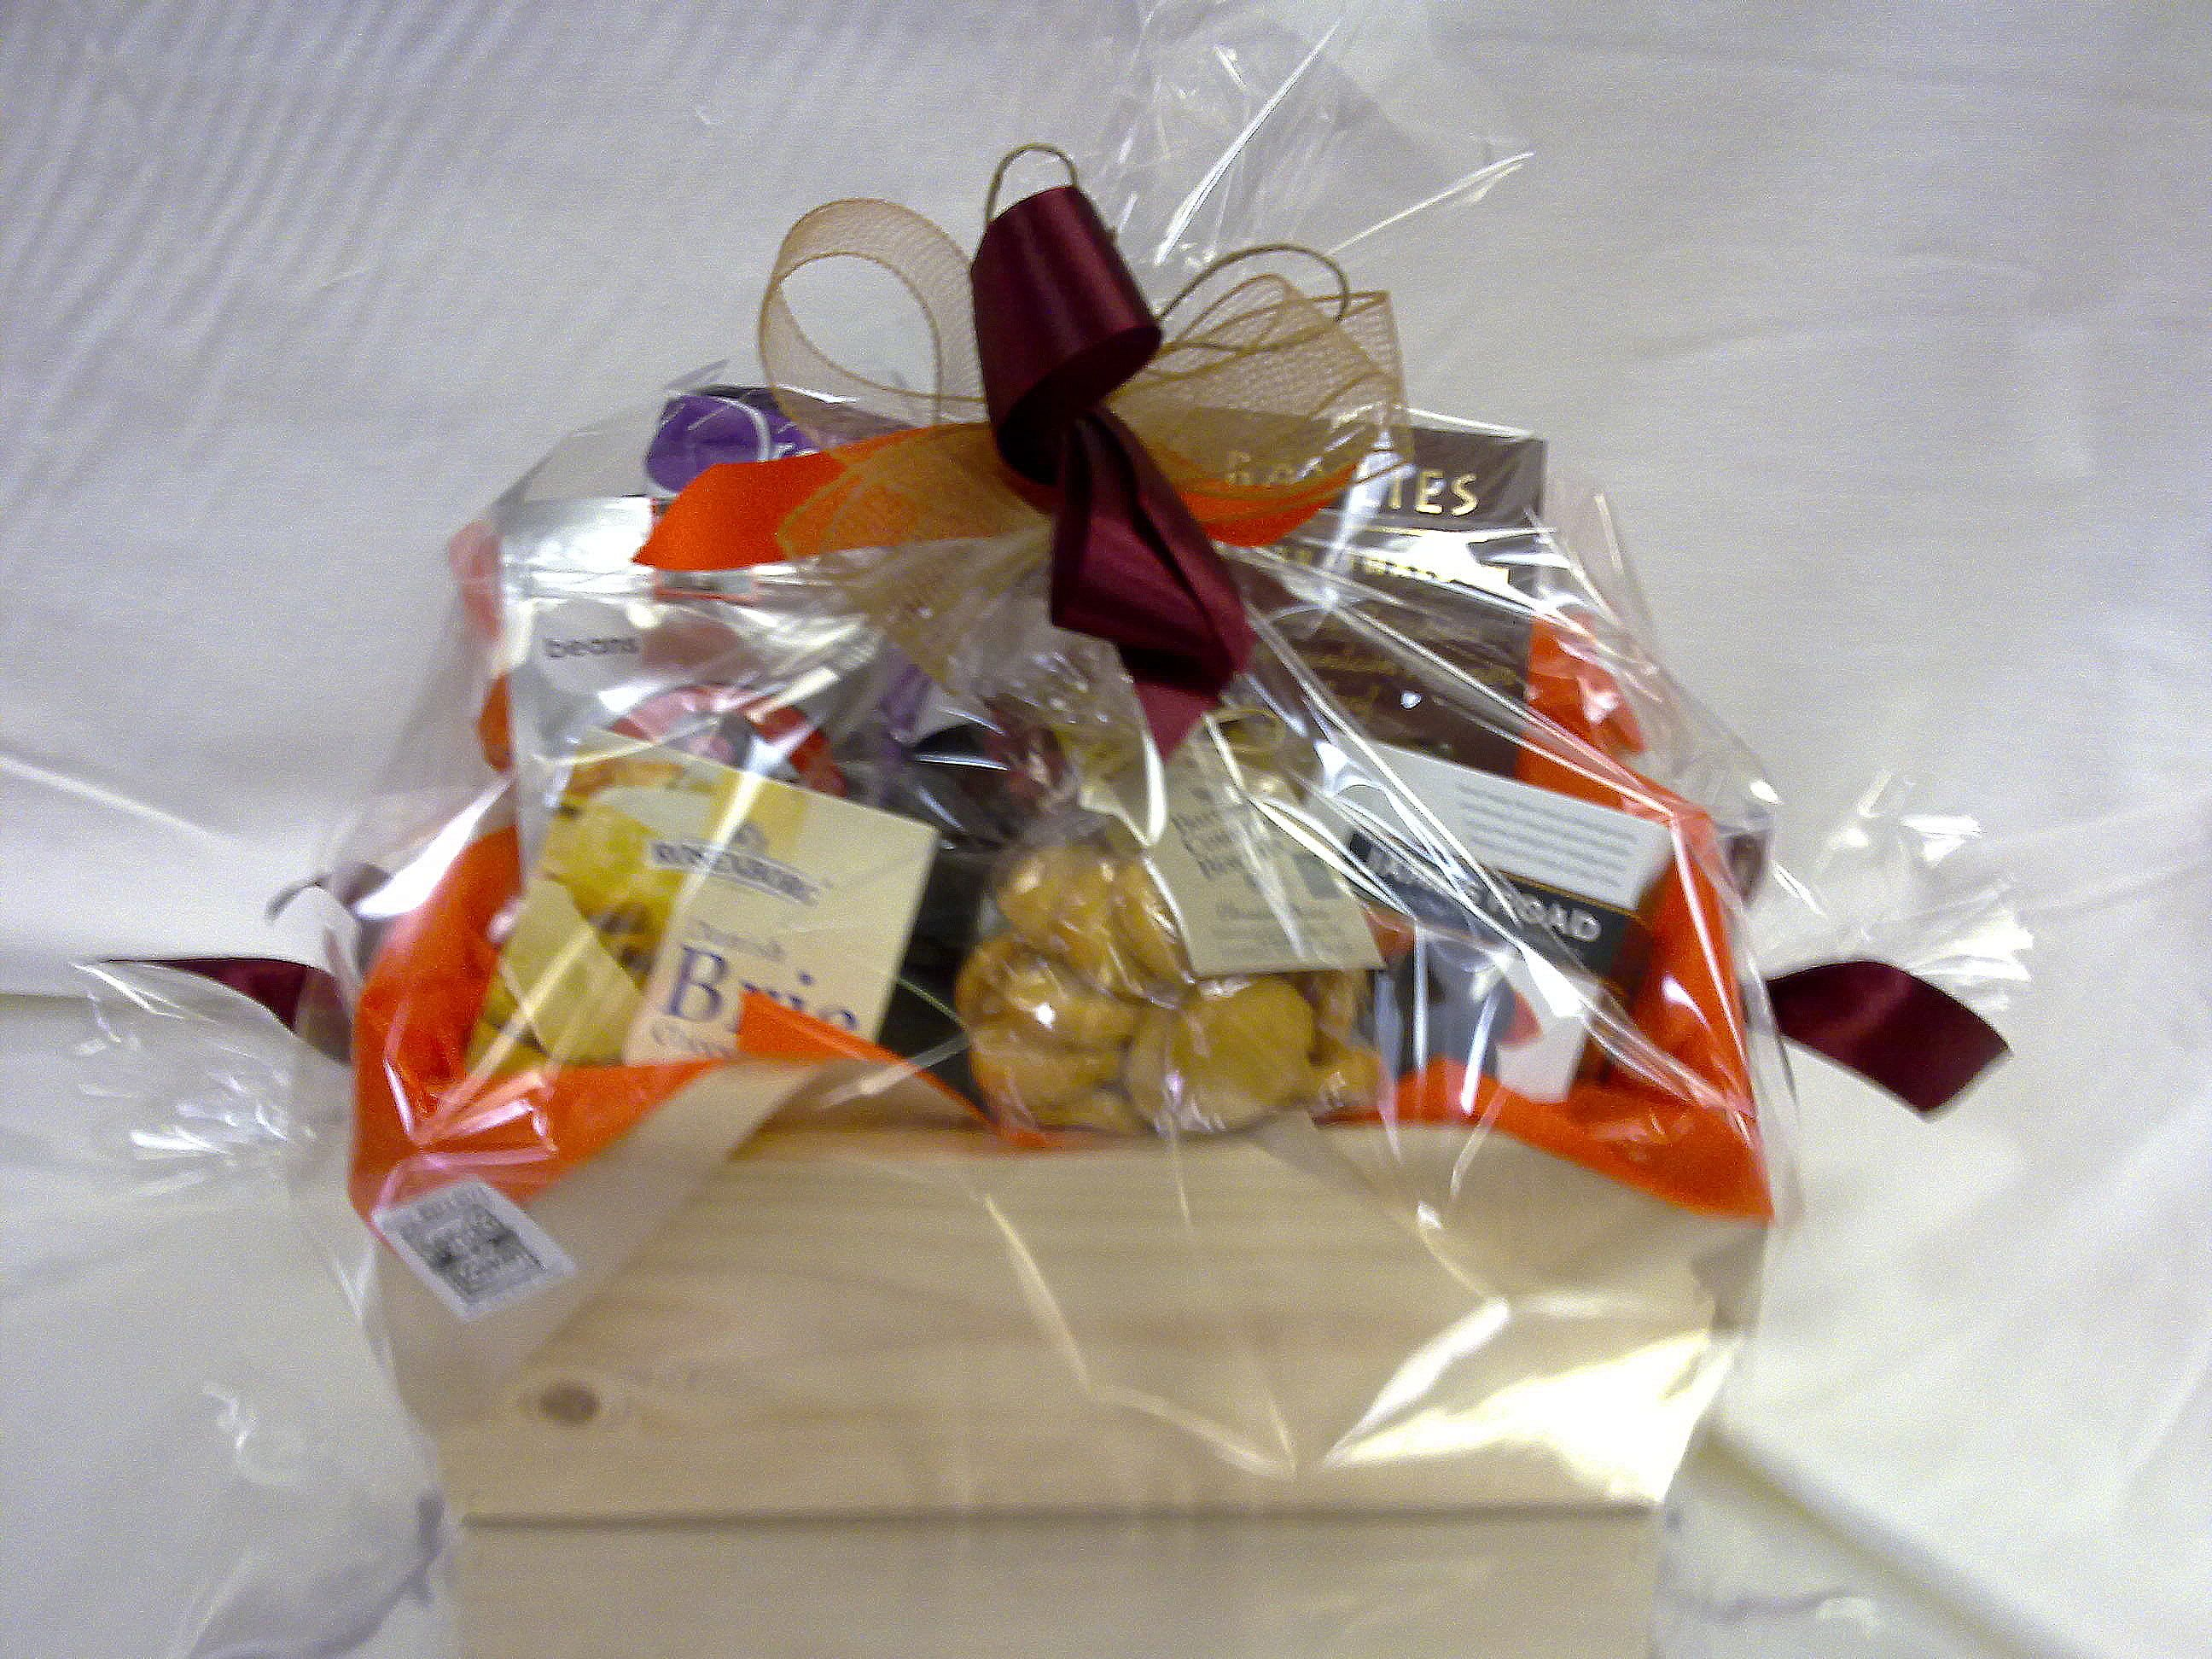 Treat selection hamper from sendabasketsa unley south australia treat selection hamper from sendabasketsa unley south australia facebook specialties corporate gift baskets gourmet hampers boxes negle Gallery